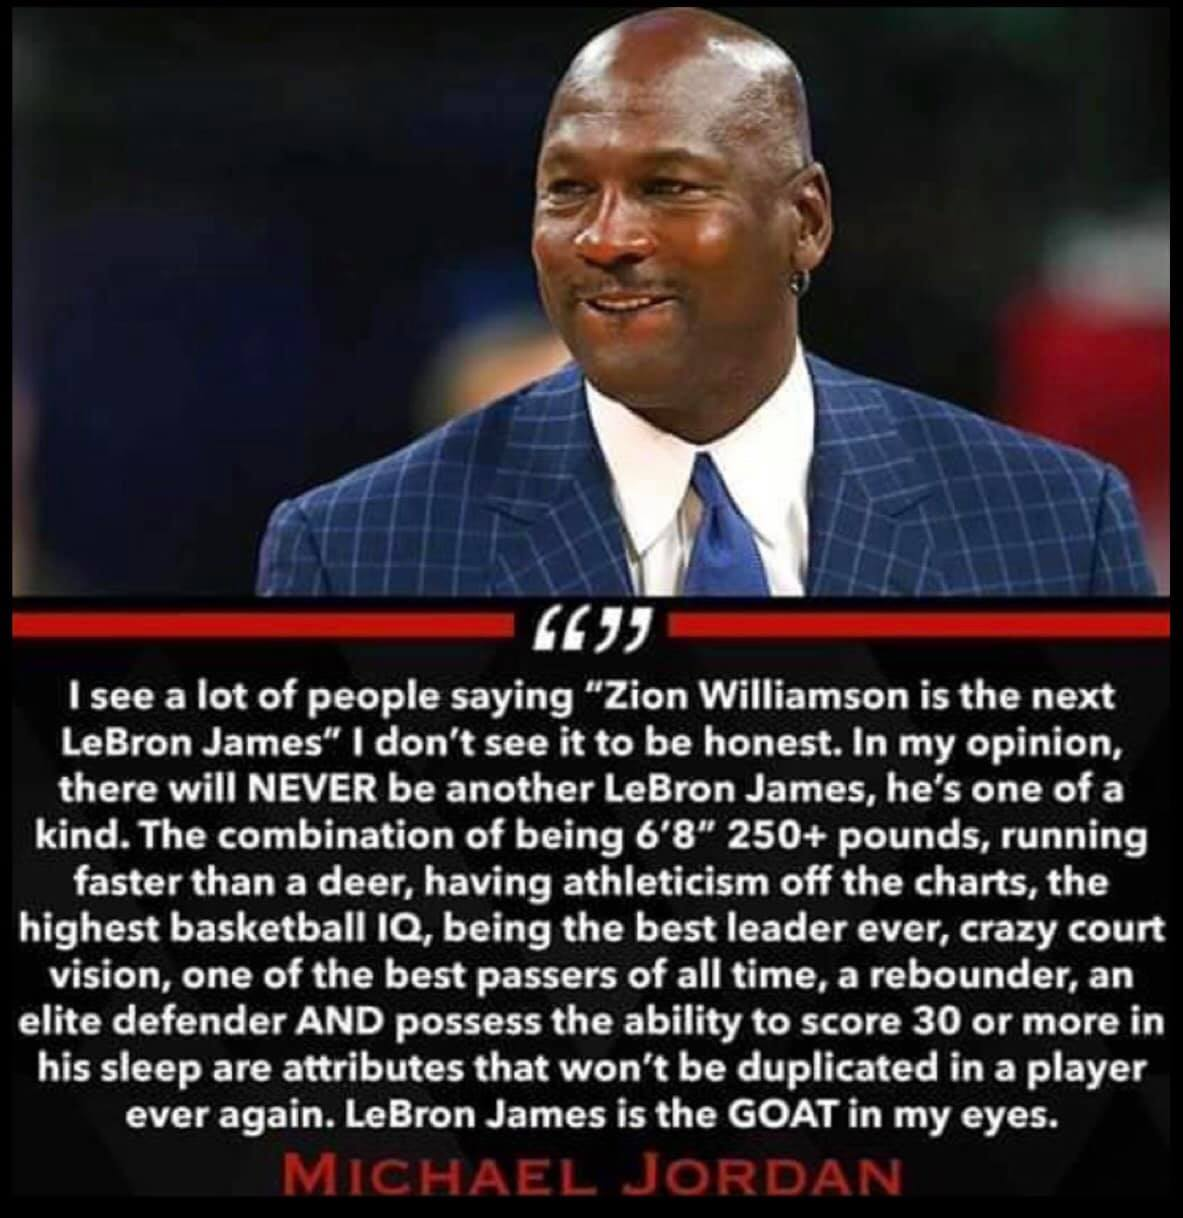 """4321470a6f95 ... former Chicago Bulls superstar Michael Jordan settled the debate once  and for all when he stated that """"LeBron James is the GOAT  greatest of all  time  ..."""